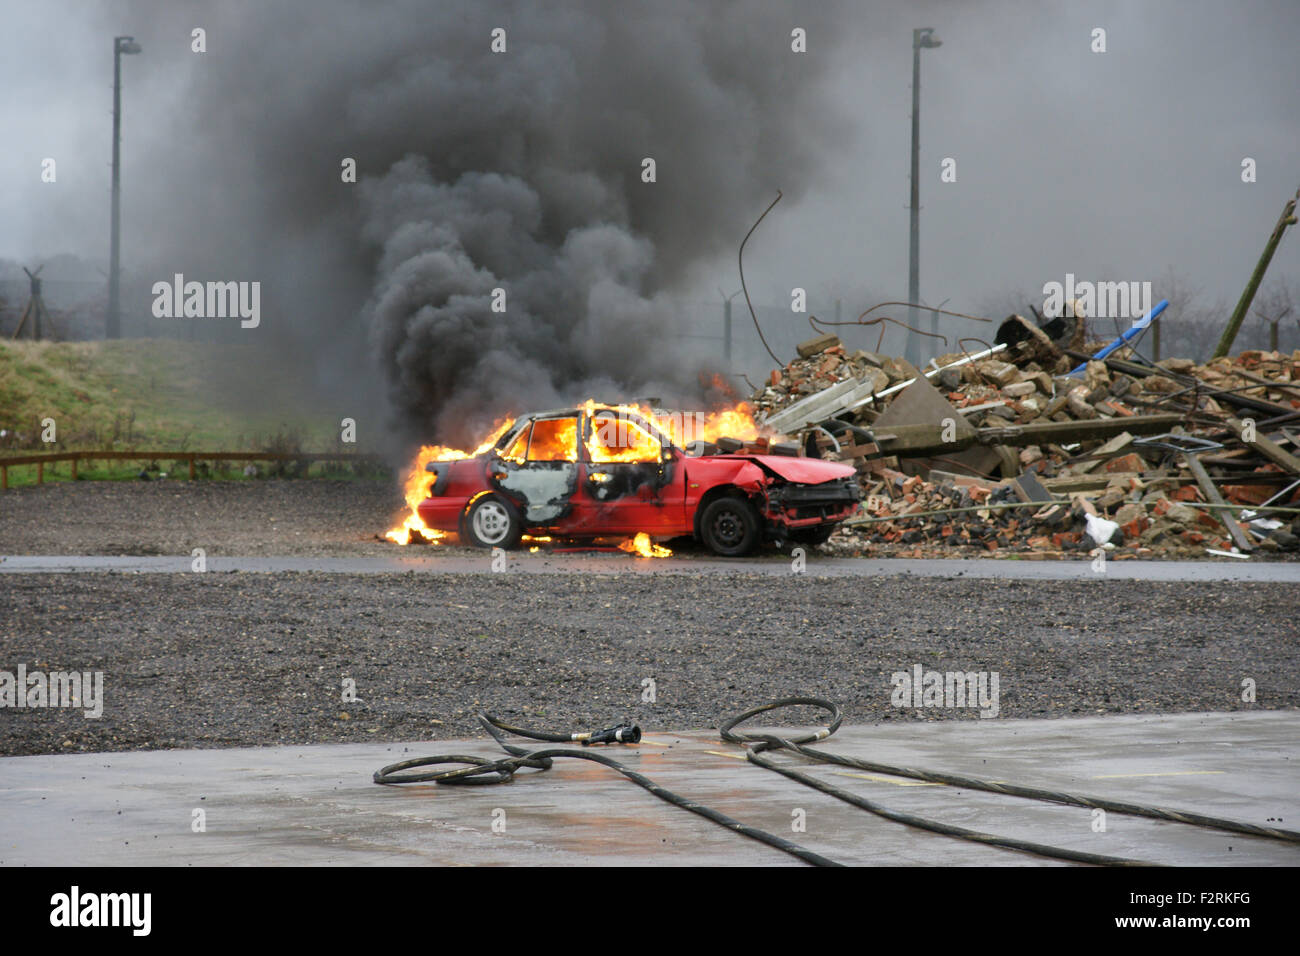 terrorist bomb explosion and destruction, disaster zone - Stock Image